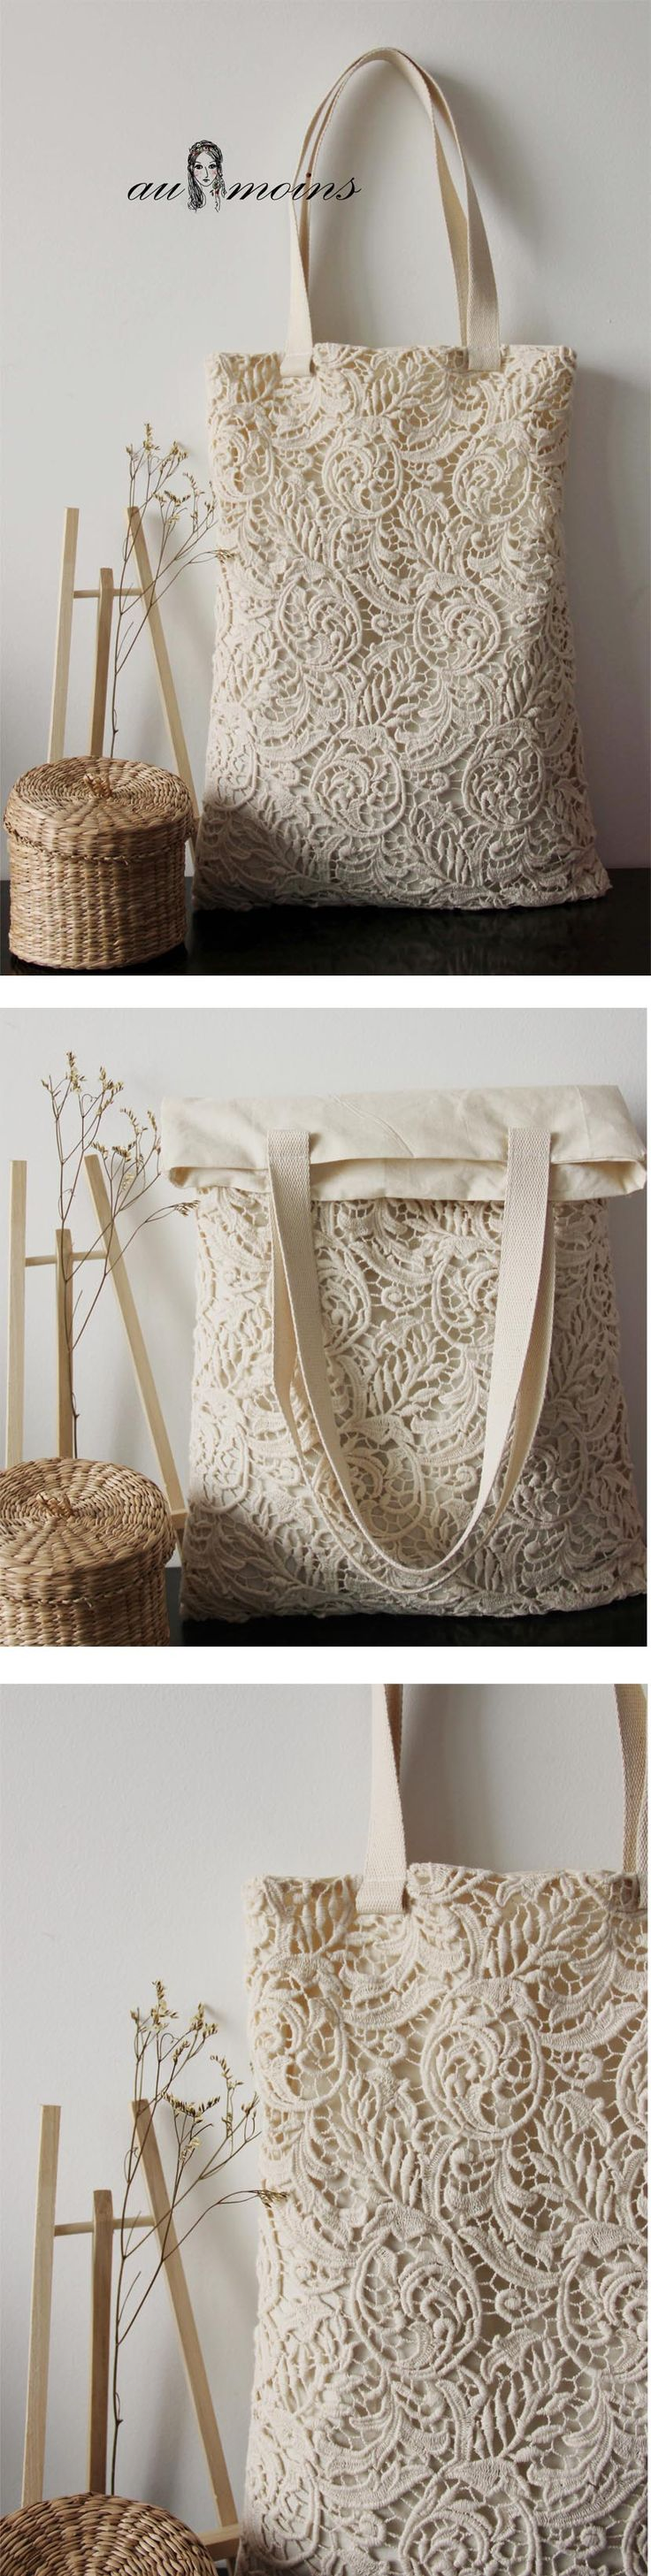 lace idea! very nice tote bag